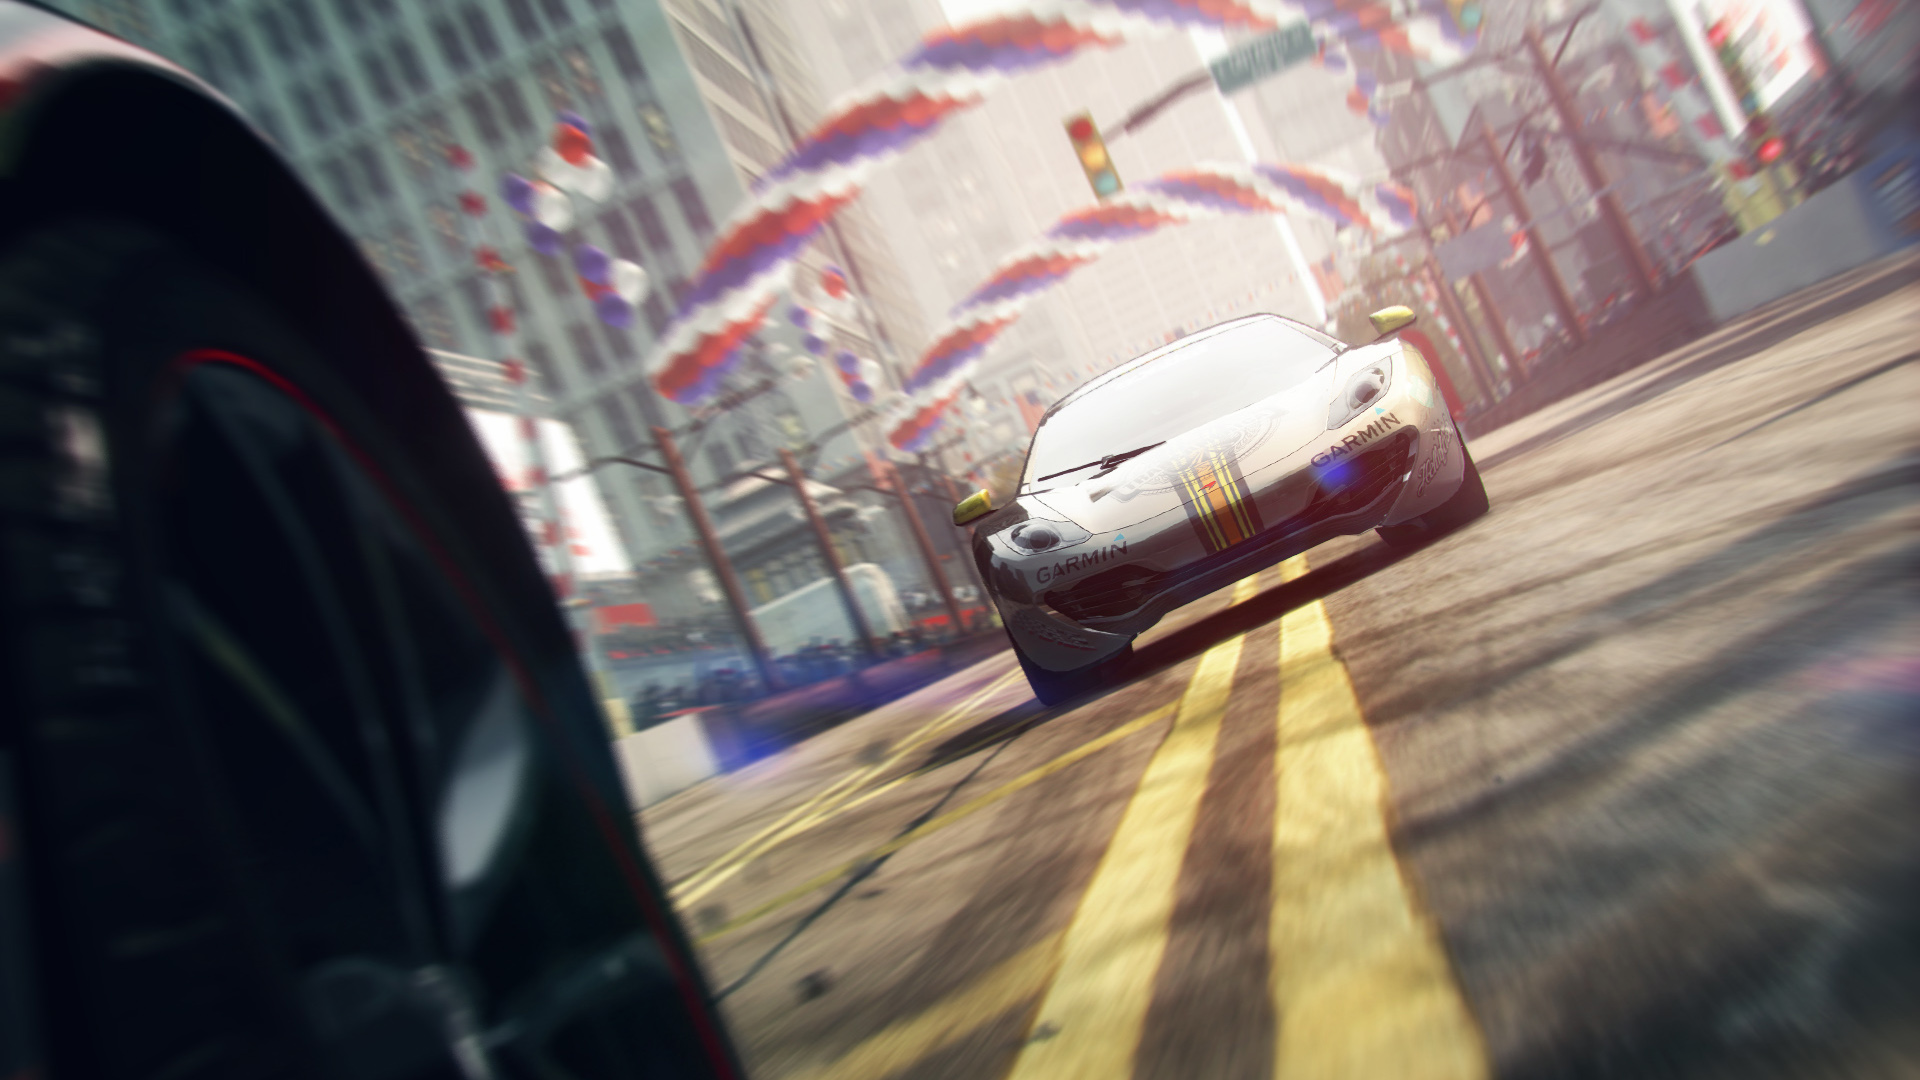 GRID 2 News: GRID 2 Announced: First Screenshots And Trailer Released